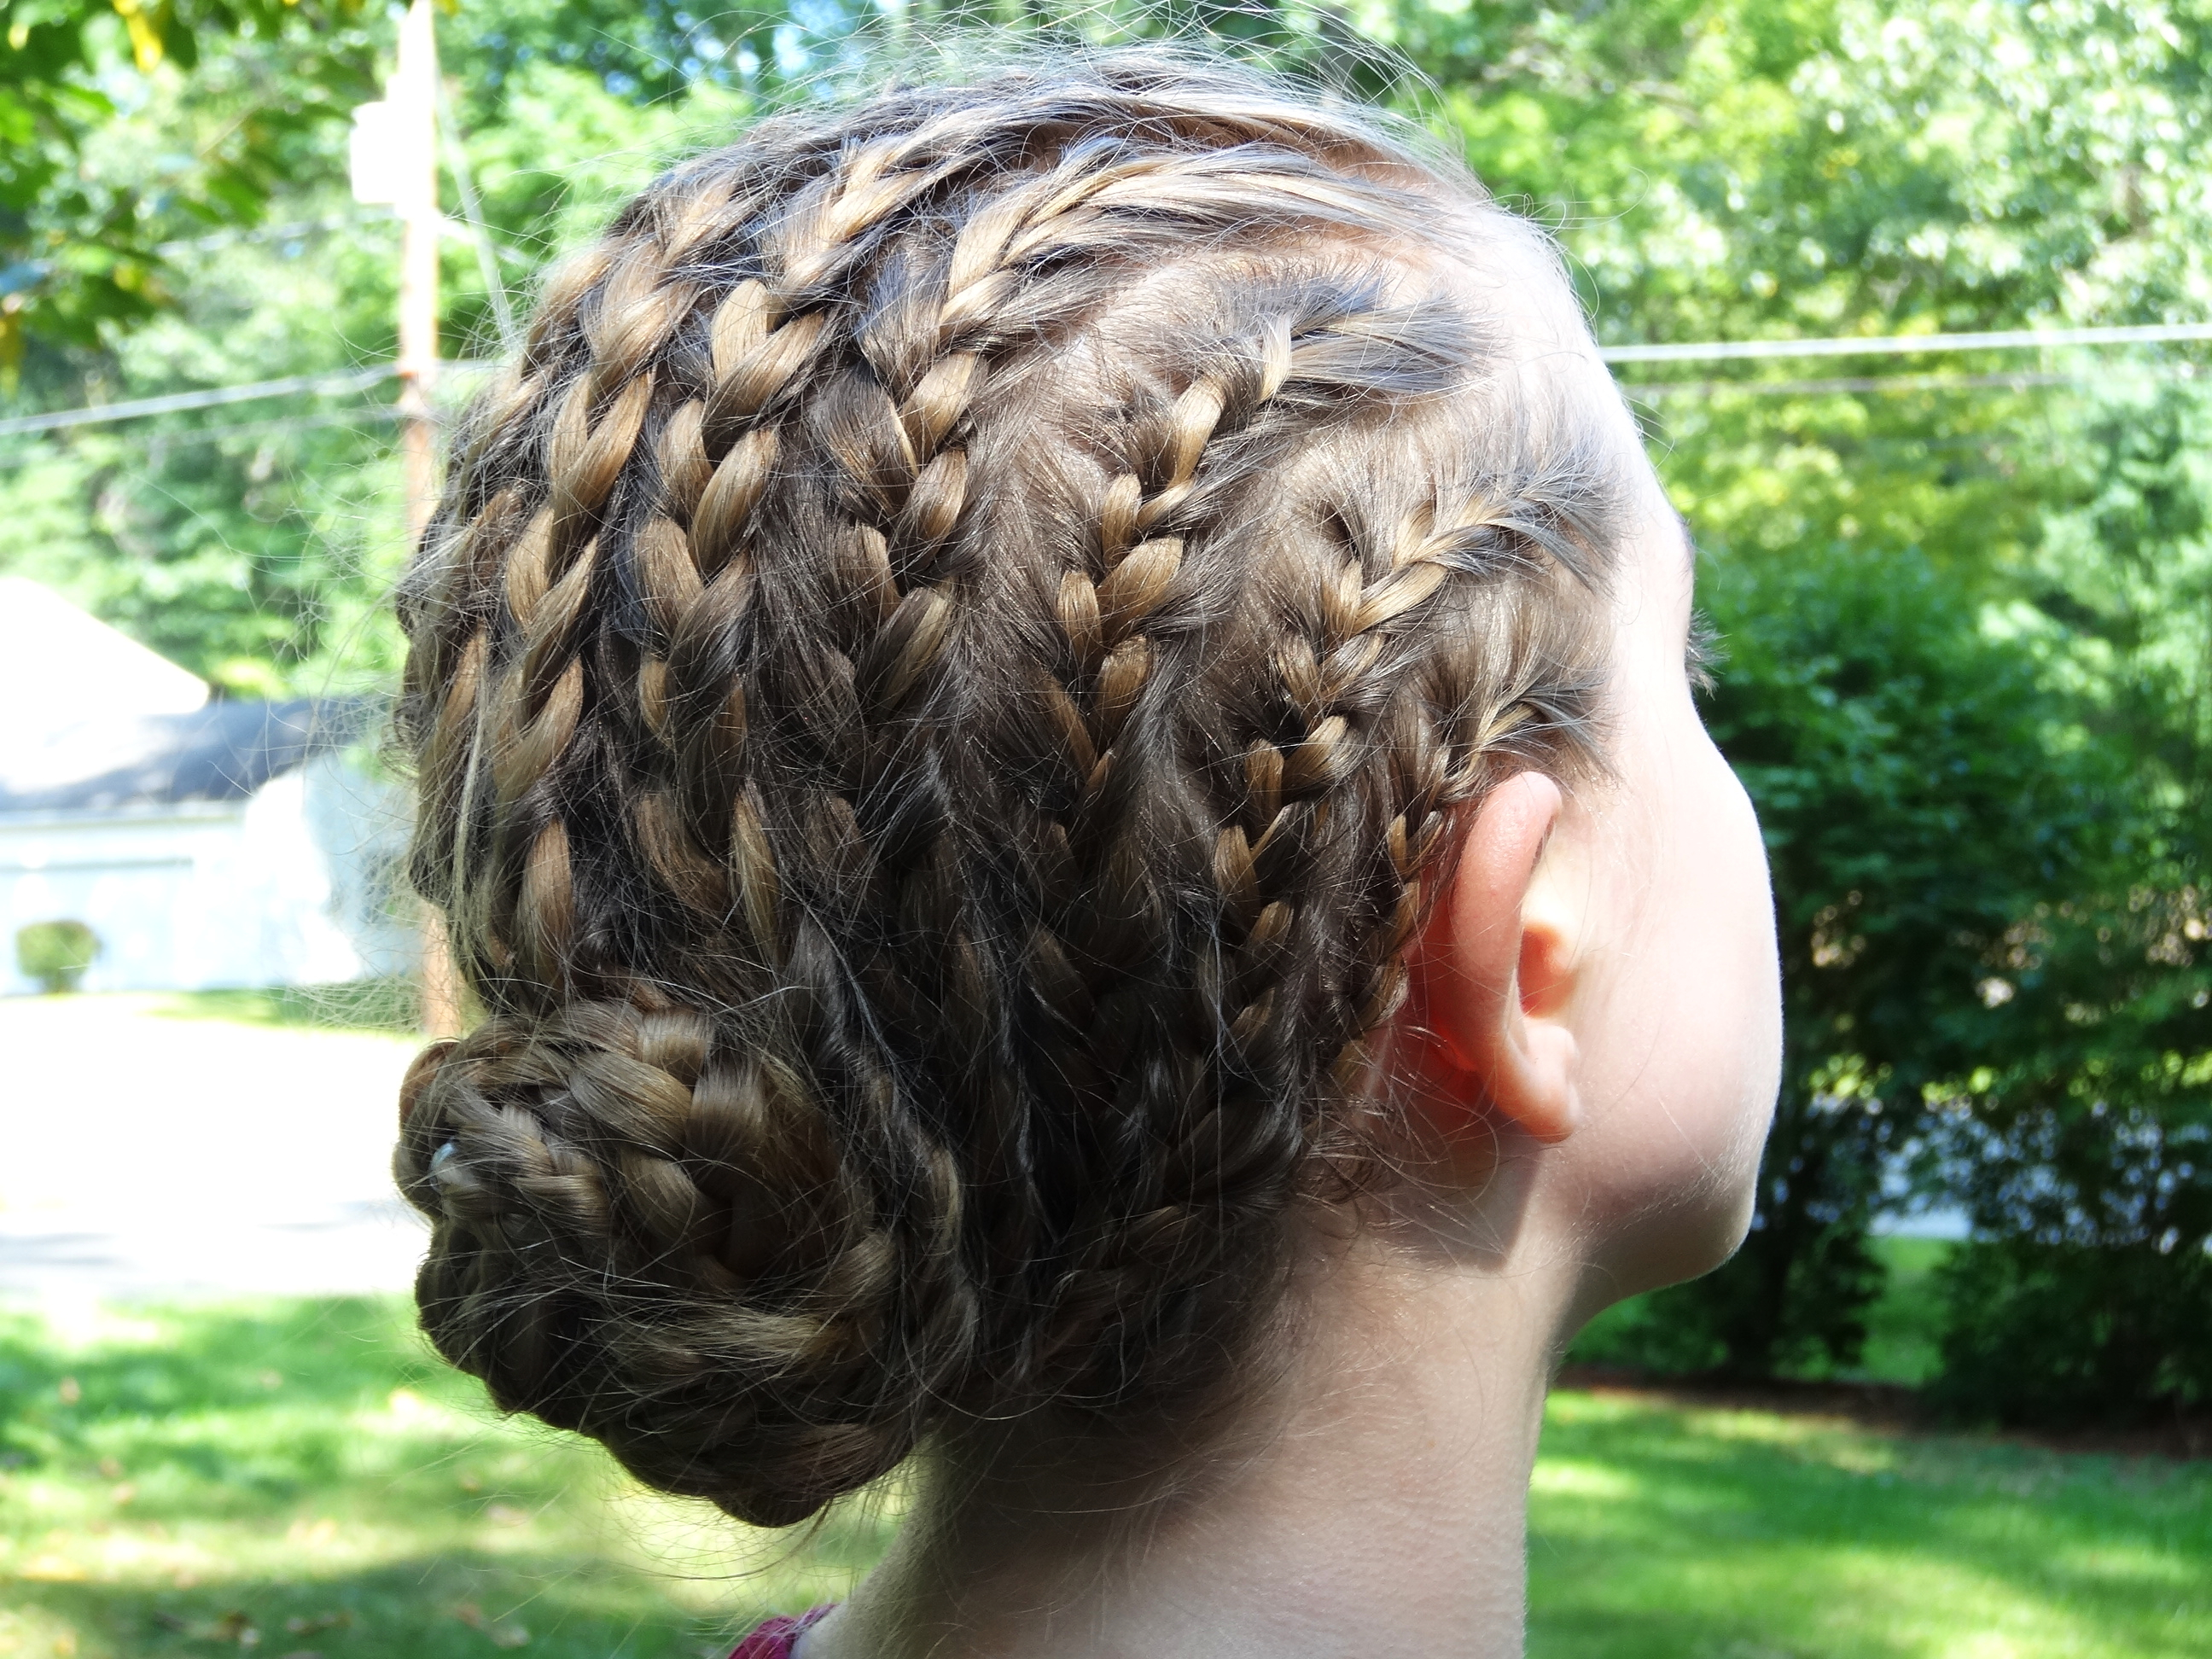 File:Cornrows Into Braided Bun.JPG